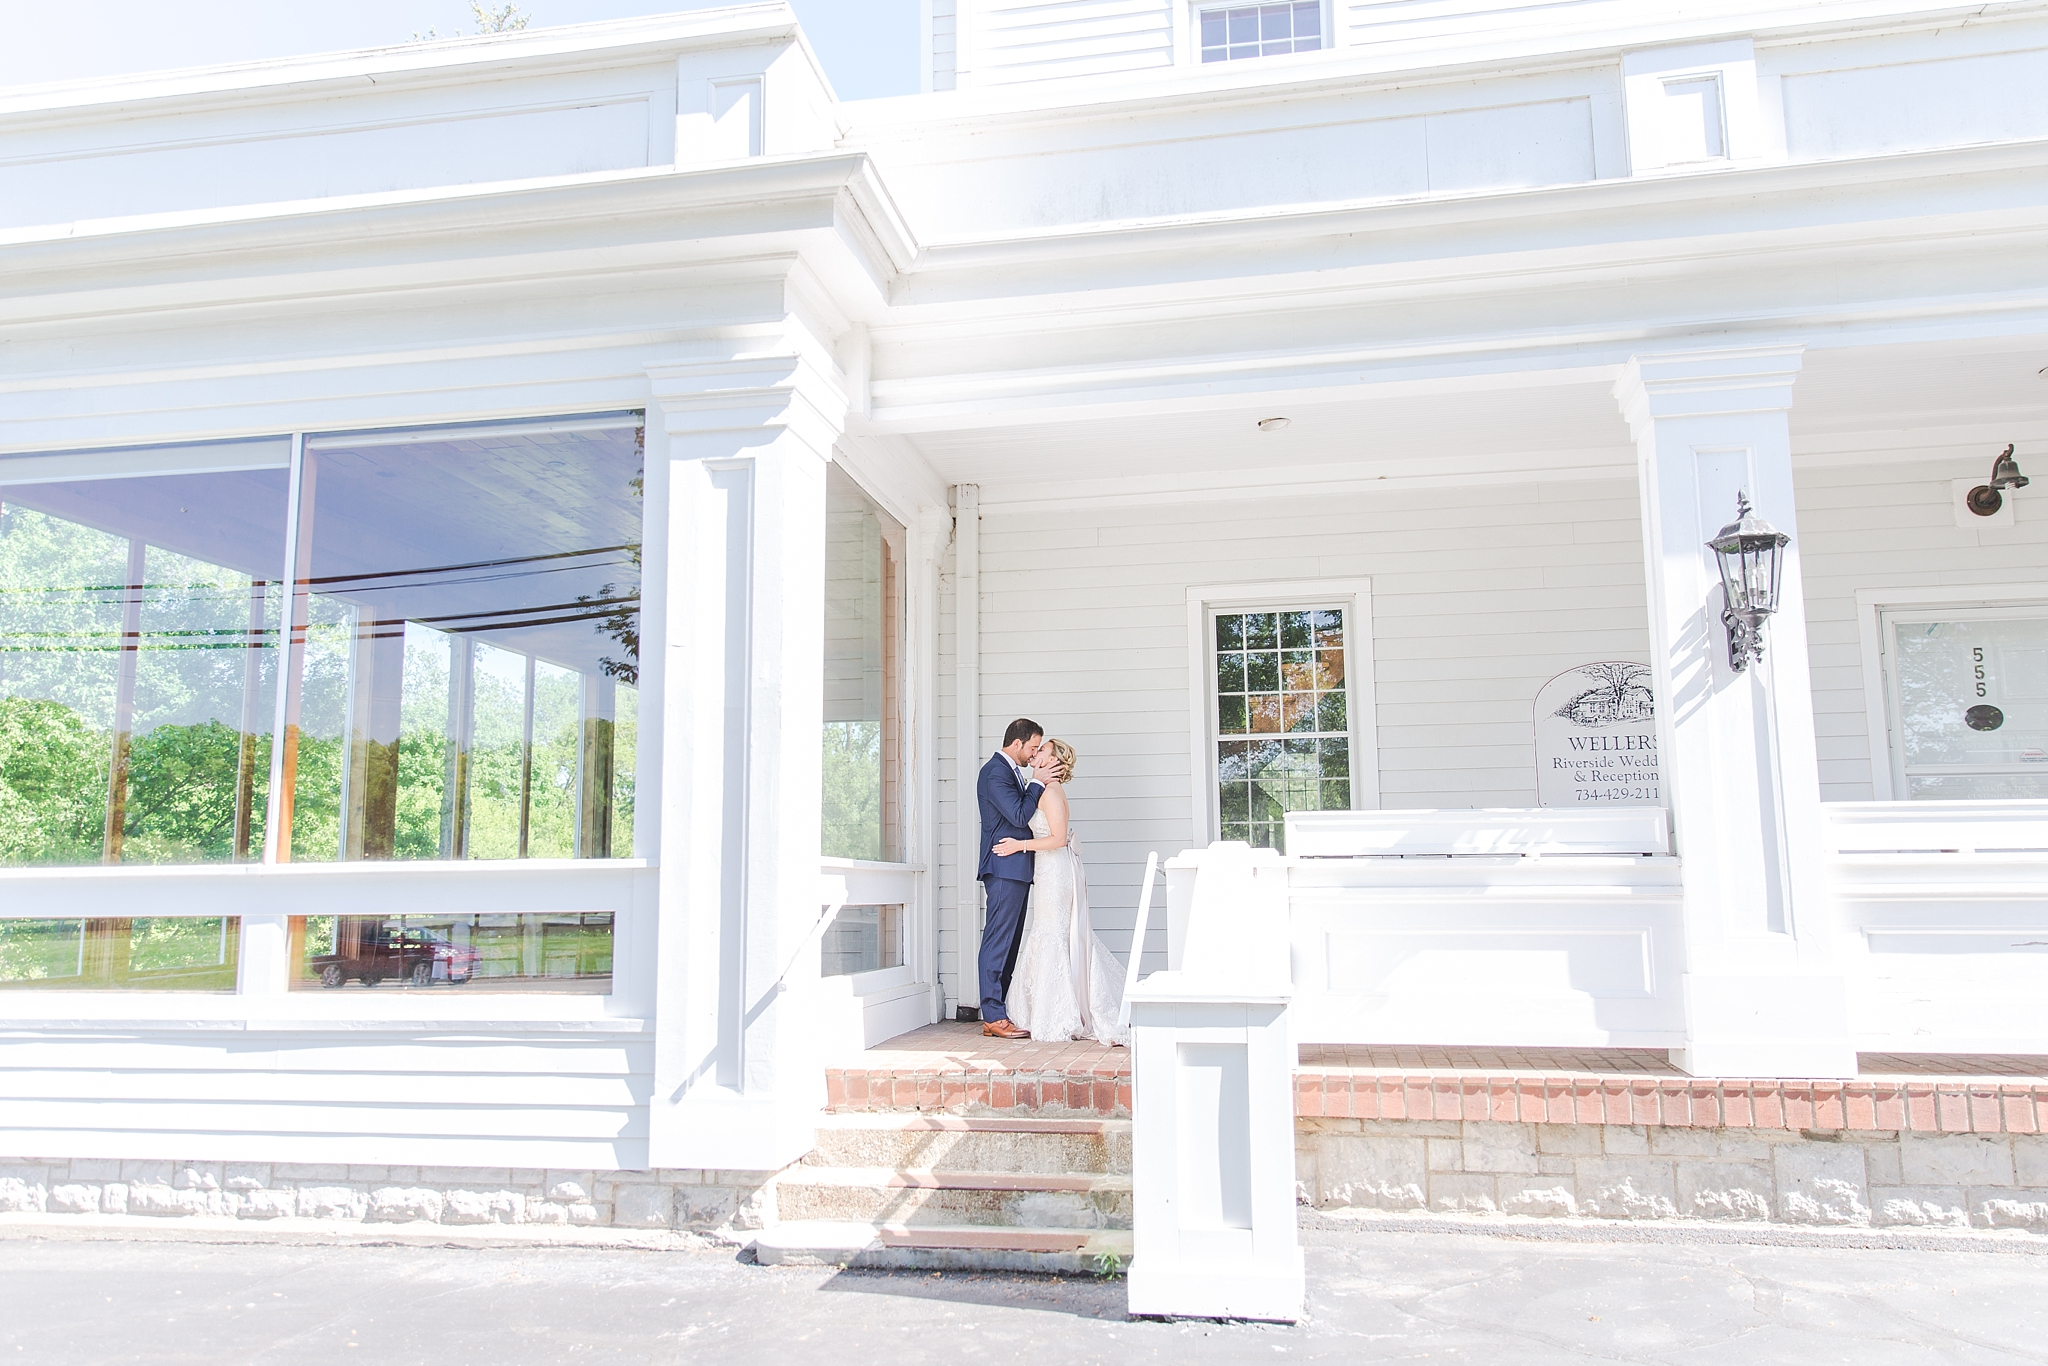 fun-candid-laid-back-wedding-photos-at-wellers-carriage-house-in-saline-michigan-and-at-the-eagle-crest-golf-resort-by-courtney-carolyn-photography_0053.jpg